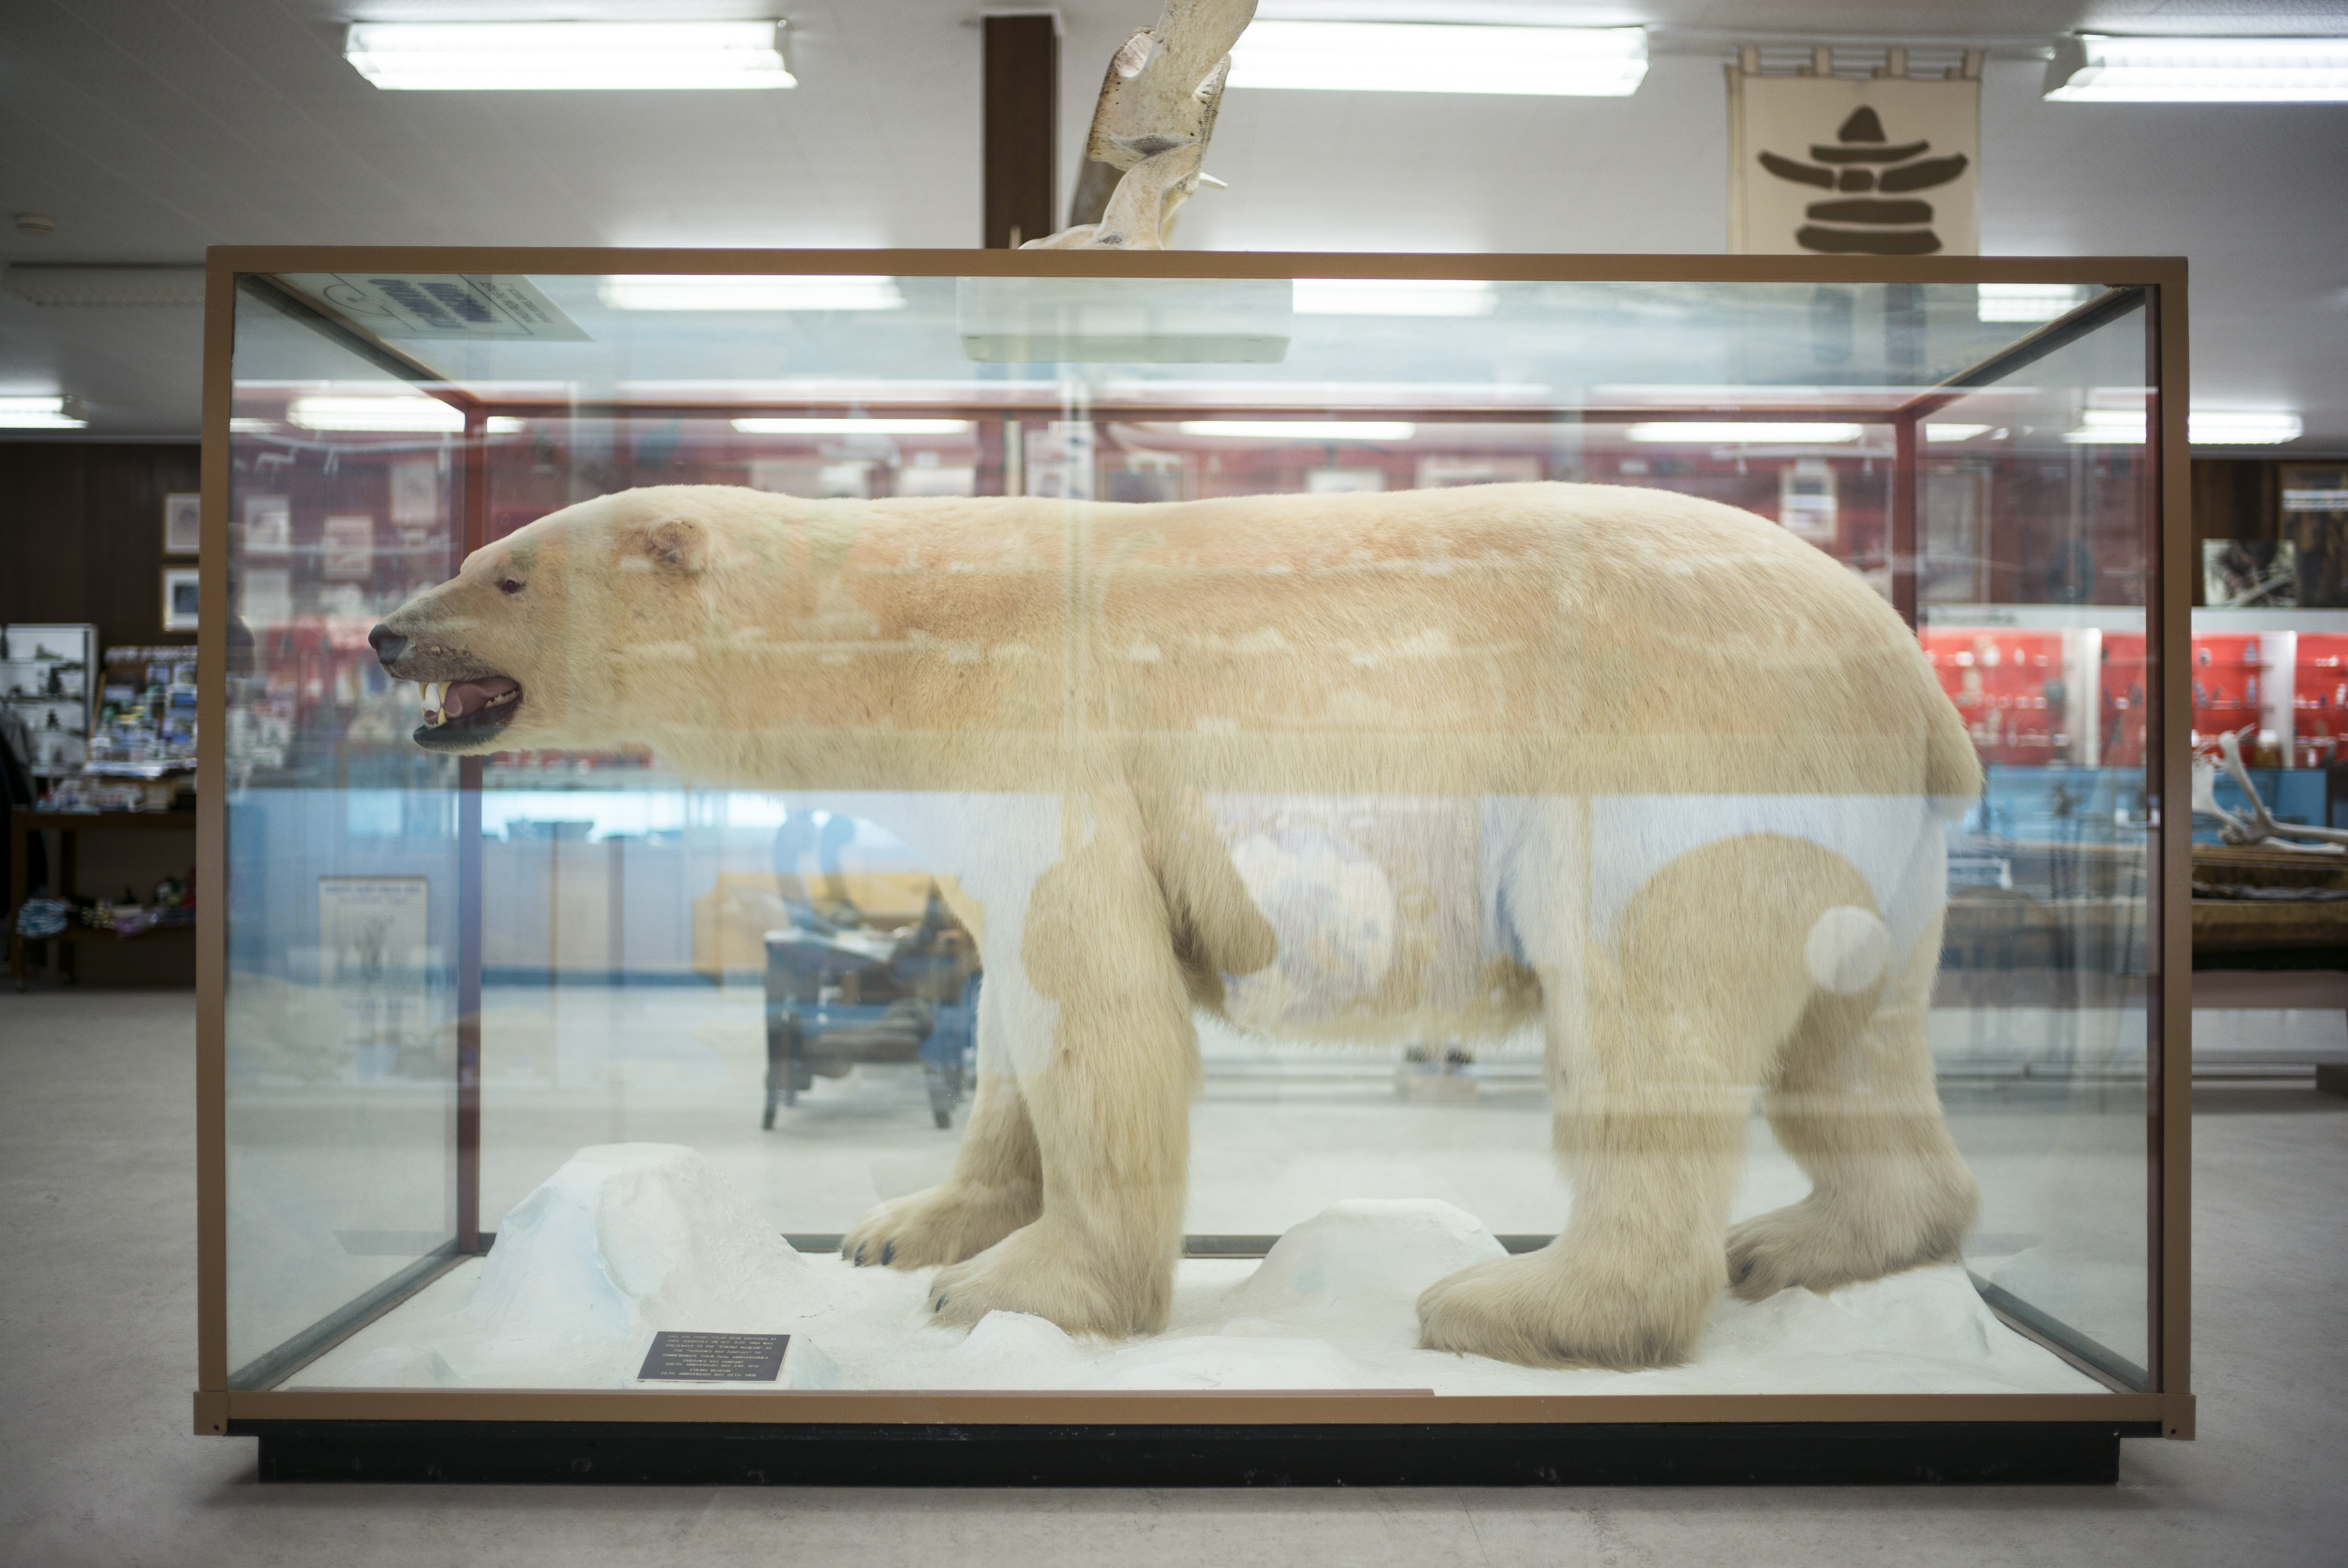 """An 800-pound stuffed polar bear on display at the Itsanitaq Museum in Churchill, Manitoba, Canada, July 25, 2017. Sitting on Hudson Bay, this self-professed """"polar bear capital of the world"""" once did a brisk tourist trade, but the closure of Churchill's vital rail link to the rest of Canada has made the cost of visiting prohibitive for most. (Ian Willms / The New York Times)"""